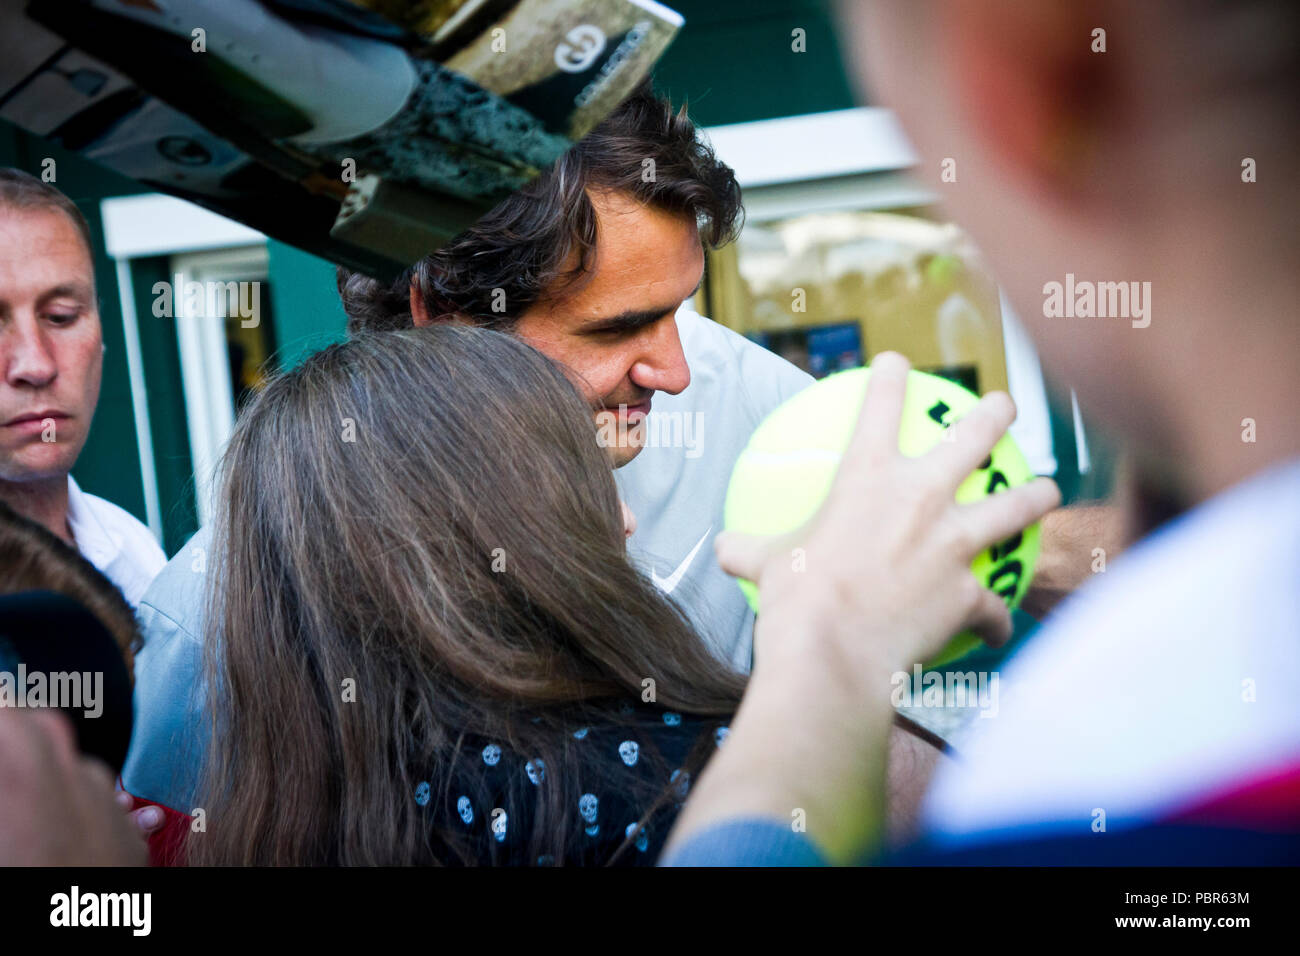 Roger Federer signs autographs for fans at the 2013 Gerry Weber Open in  Halle (Westfalen f97db03e8dd3